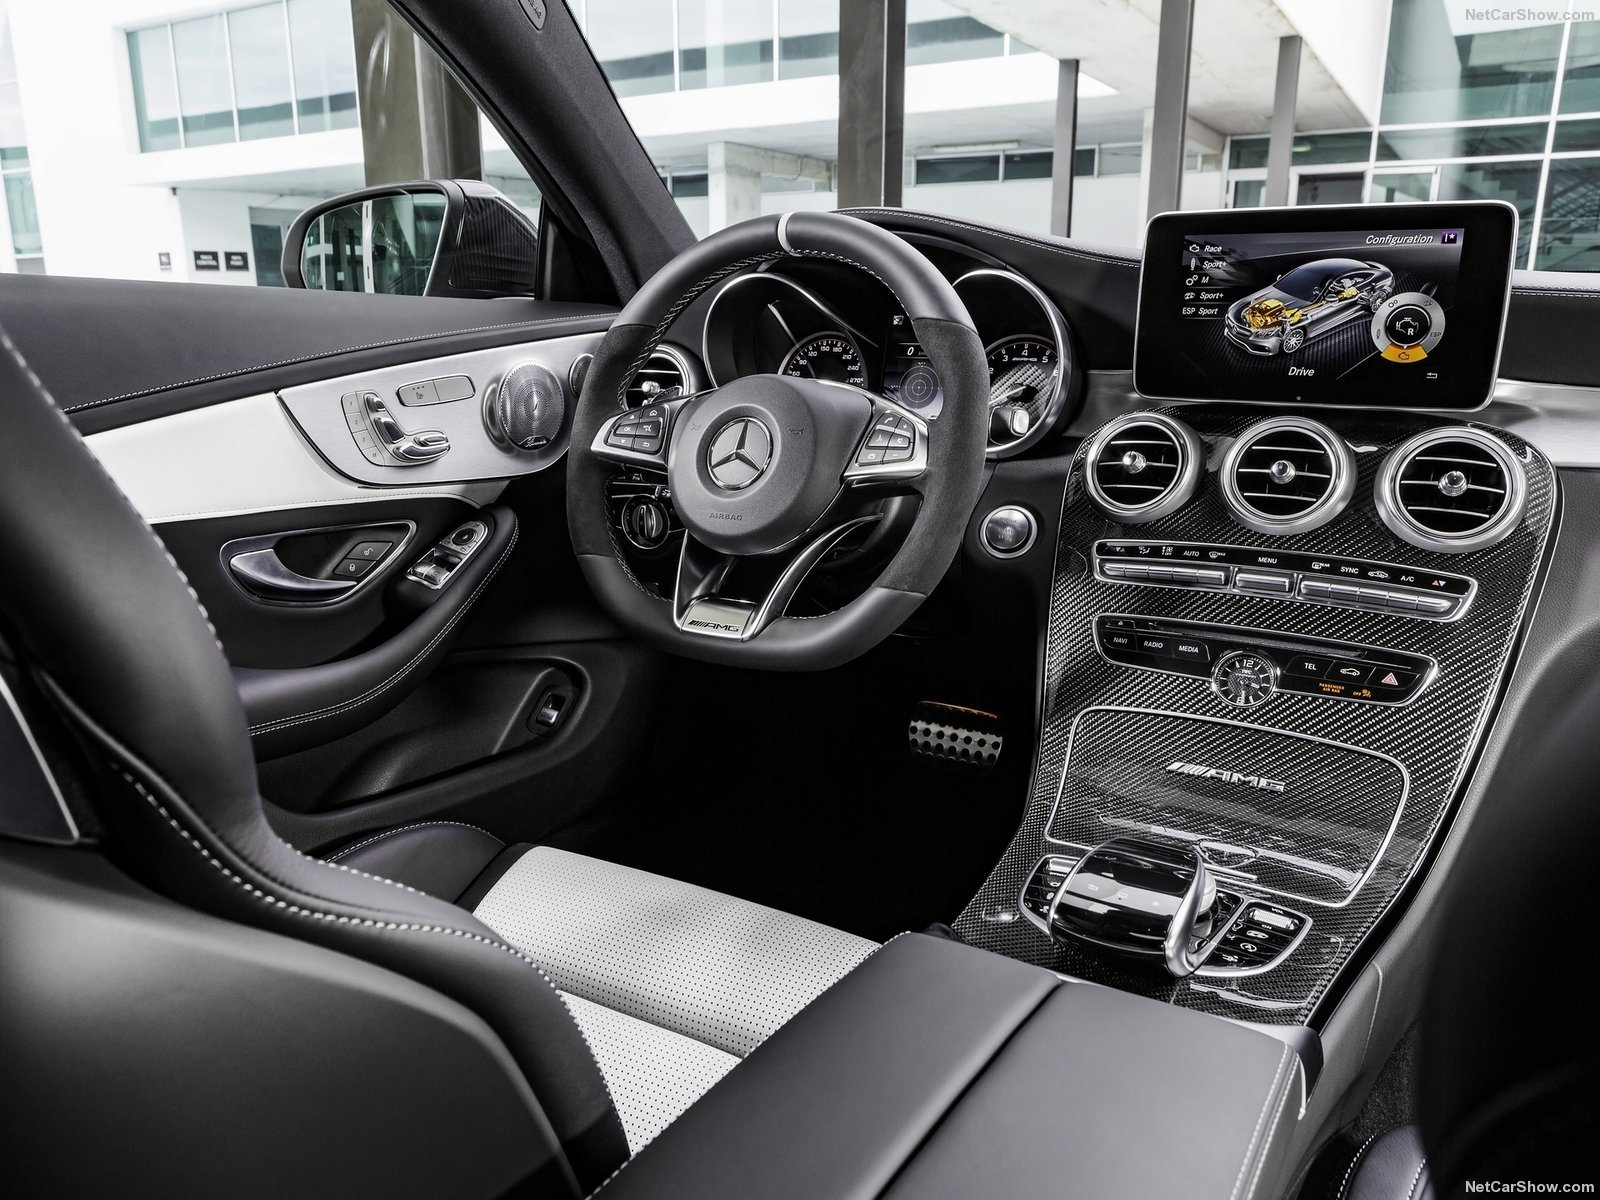 1092218 2015 Mercedes Benz C Class Wagon Revealed in addition Watch as well 2018 Mercedes A Class Interior likewise Mercedes Benz C200 Coupe 2016 Review Road Test 45837 also 633 Mercedes Benz Cla 45 Amg. on c180 amg